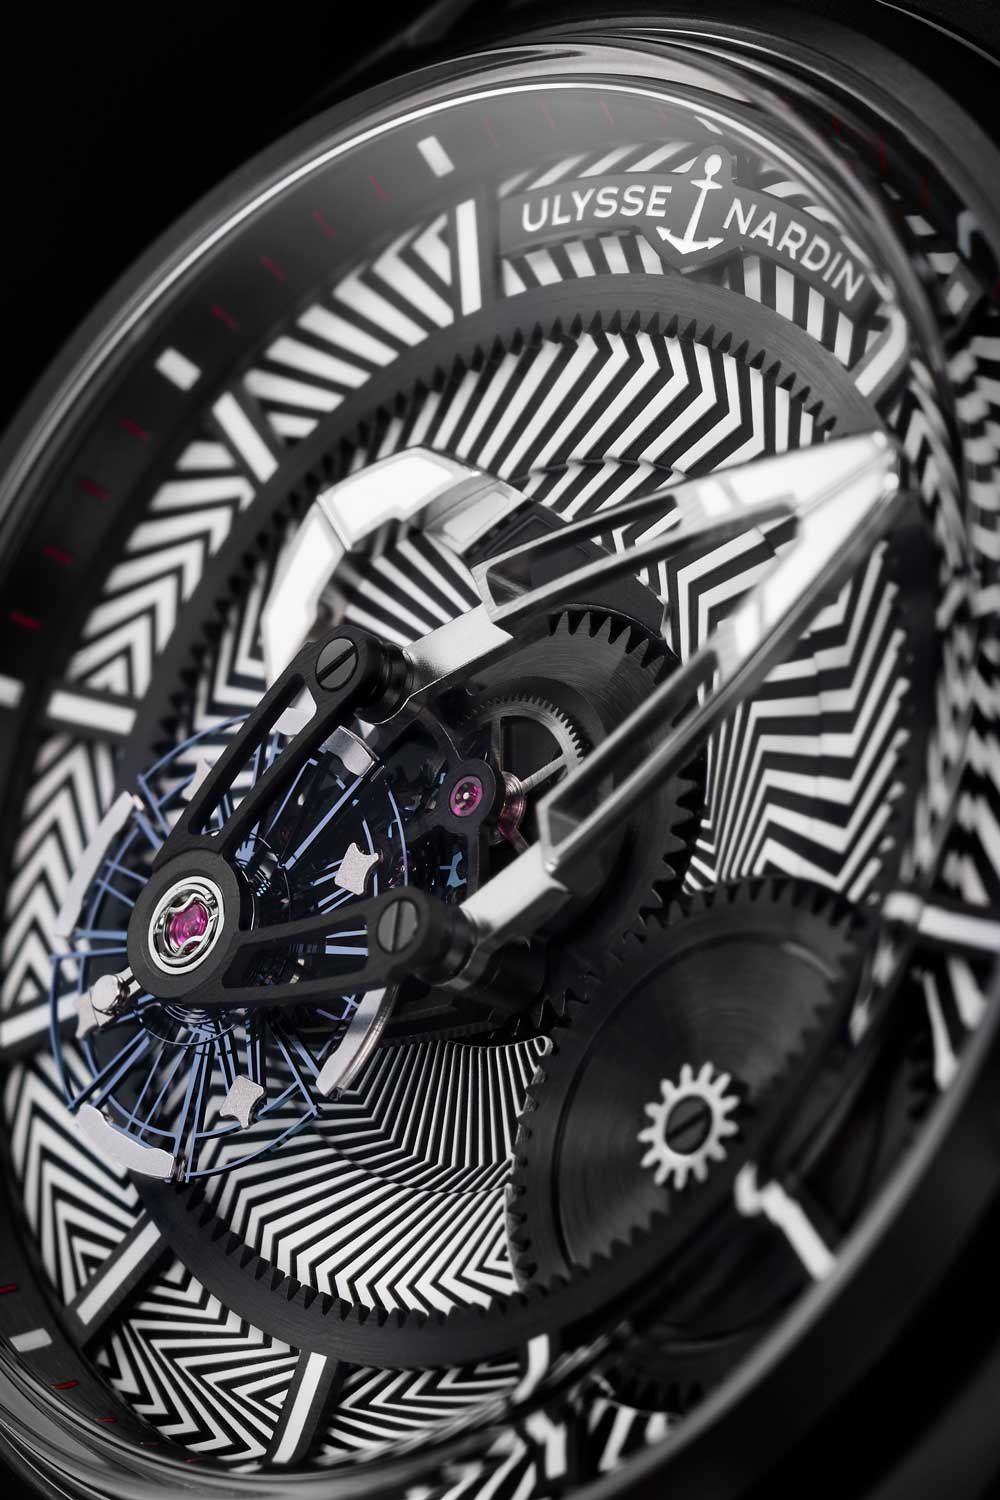 """The avant-garde """"razzle dazzle"""" tapisserie in the new Freak X highlights the watch's edgy carousel movement"""